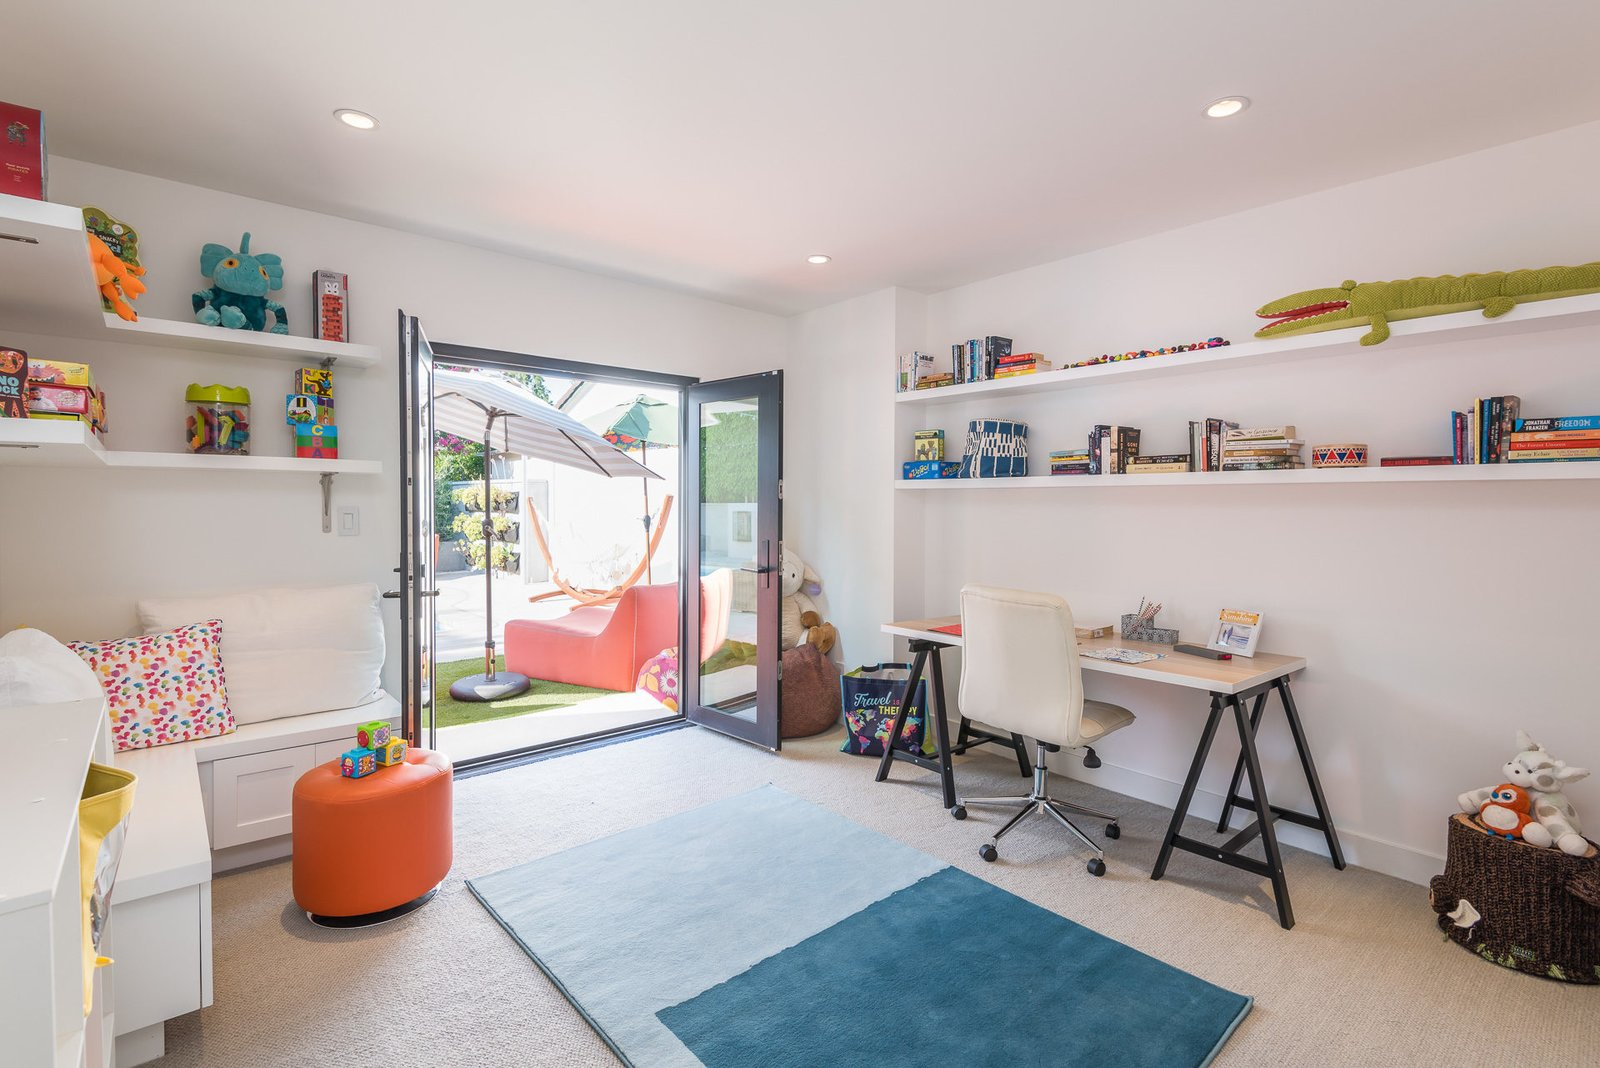 Office, Craft Room Room Type, Chair, Desk, and Shelves  Mid-Century Meets Boho Chic